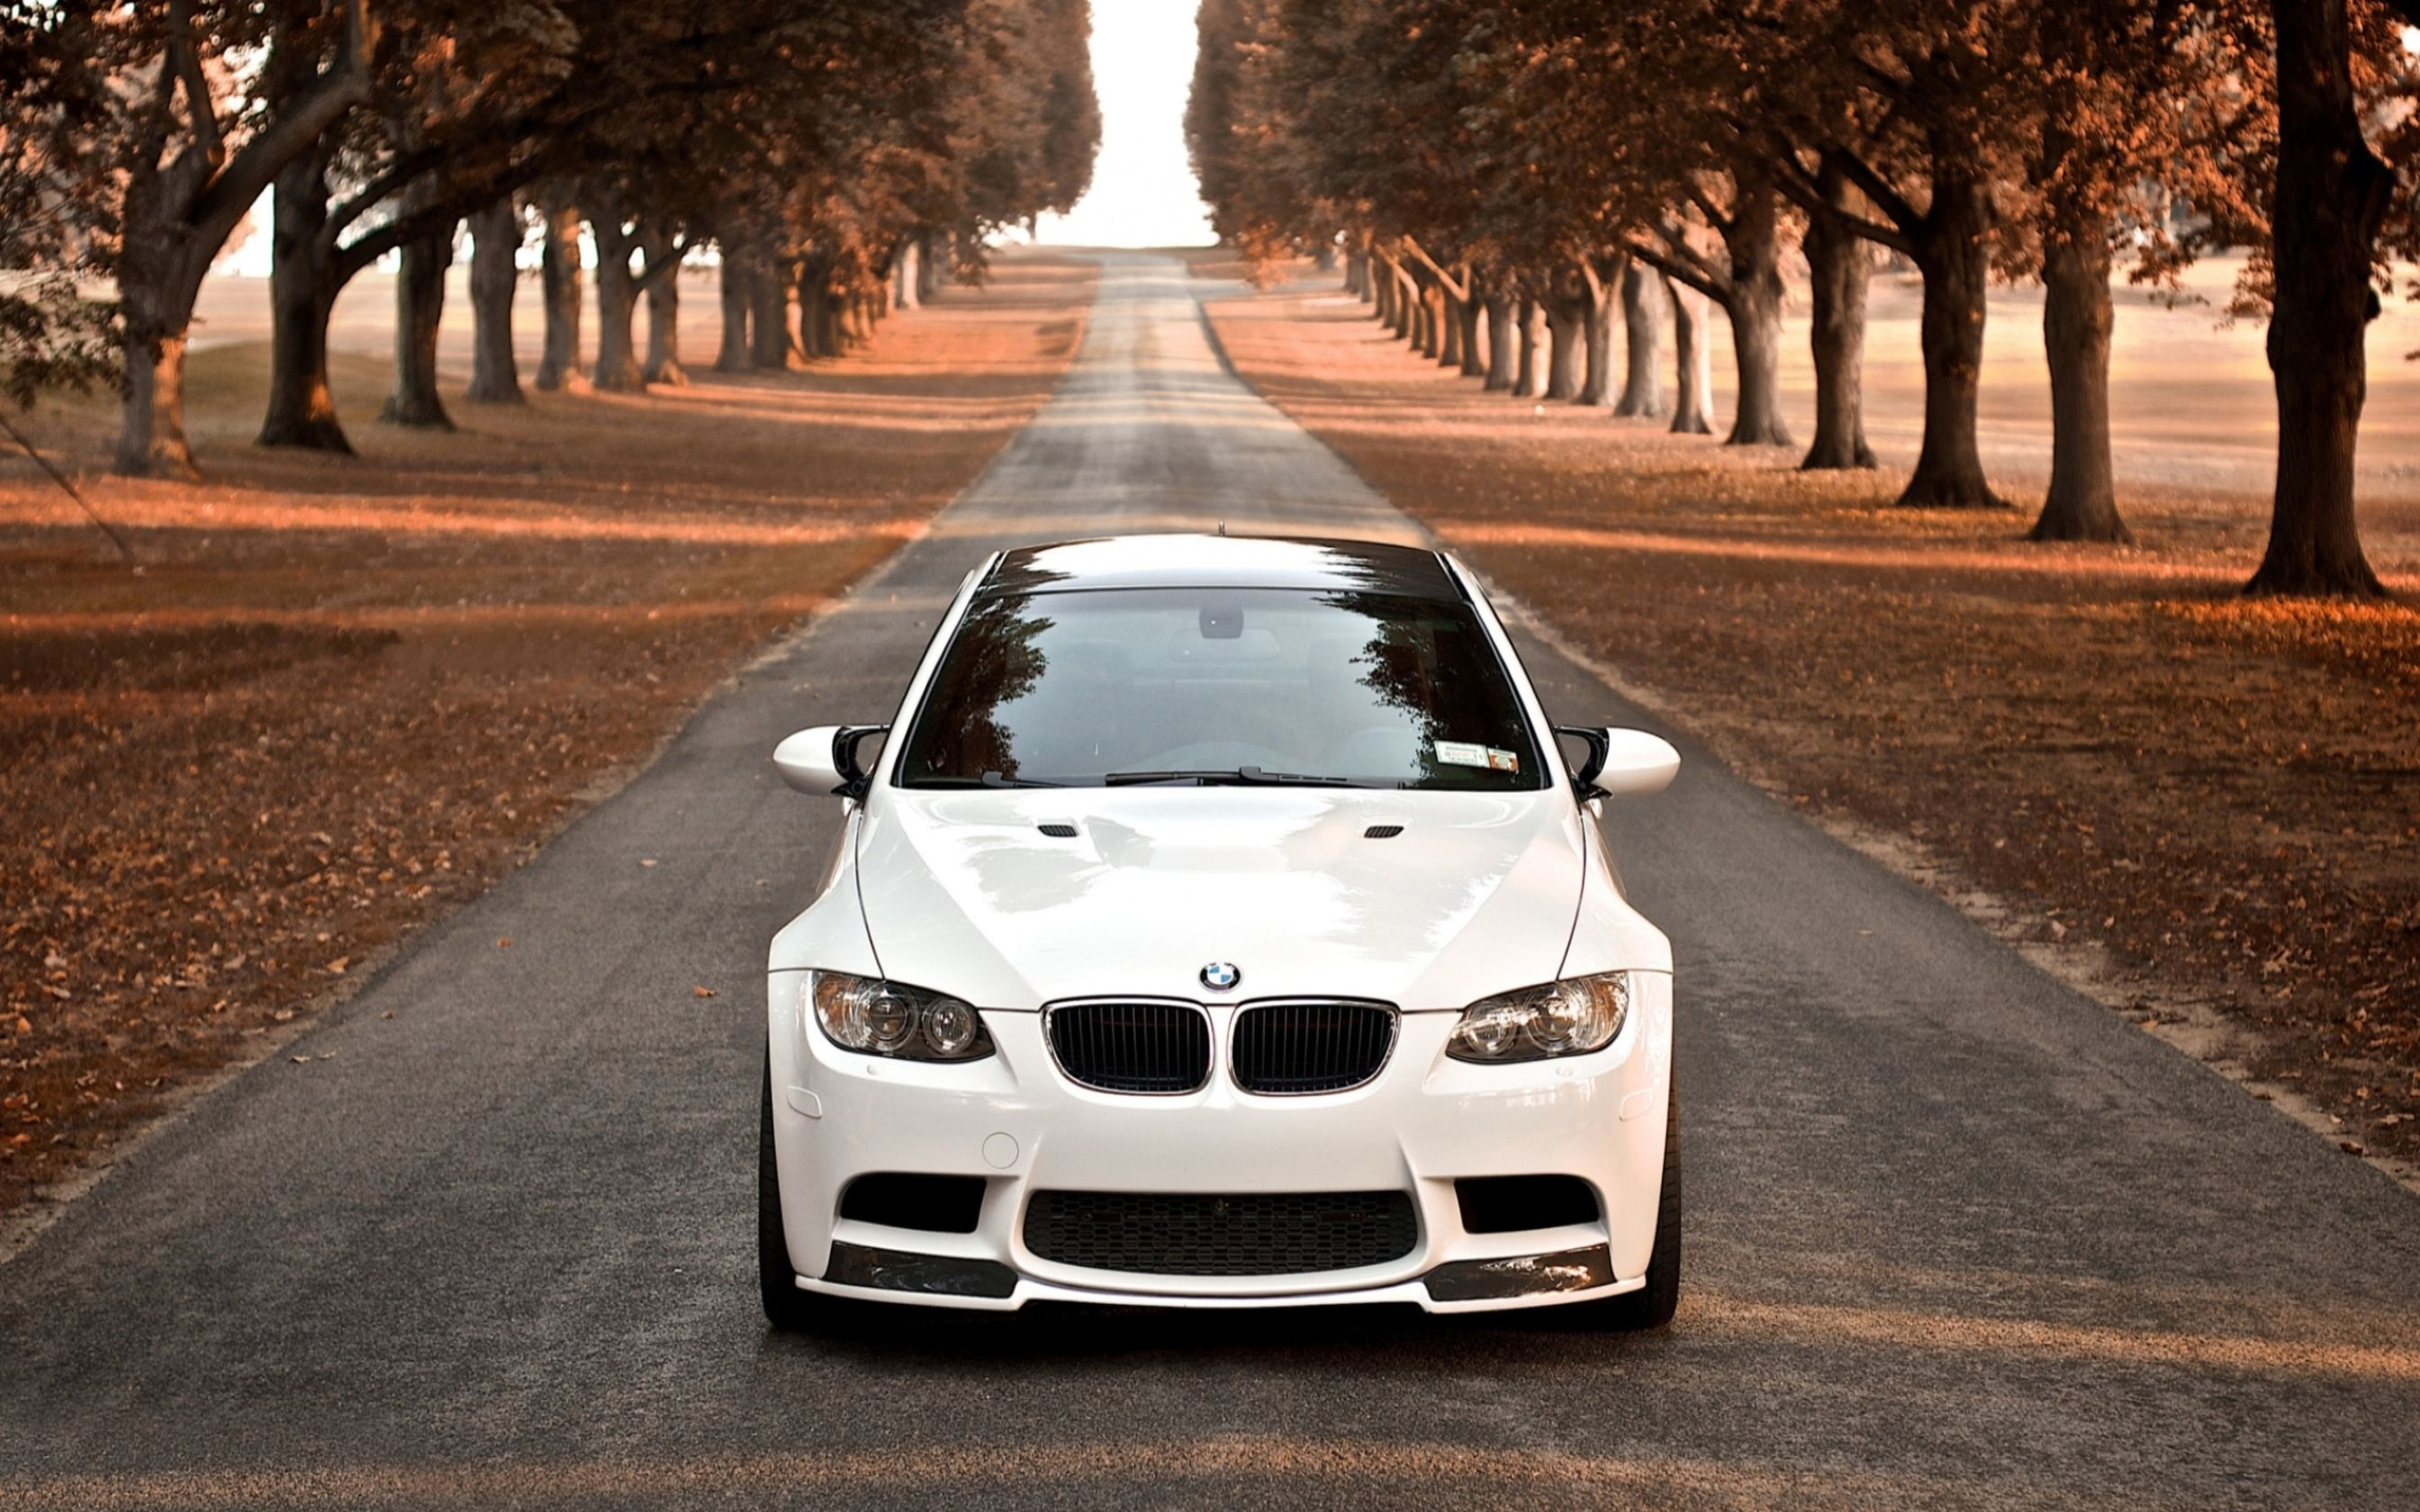 bmw m3 wallpaper: desktop hd wallpaper - download free image